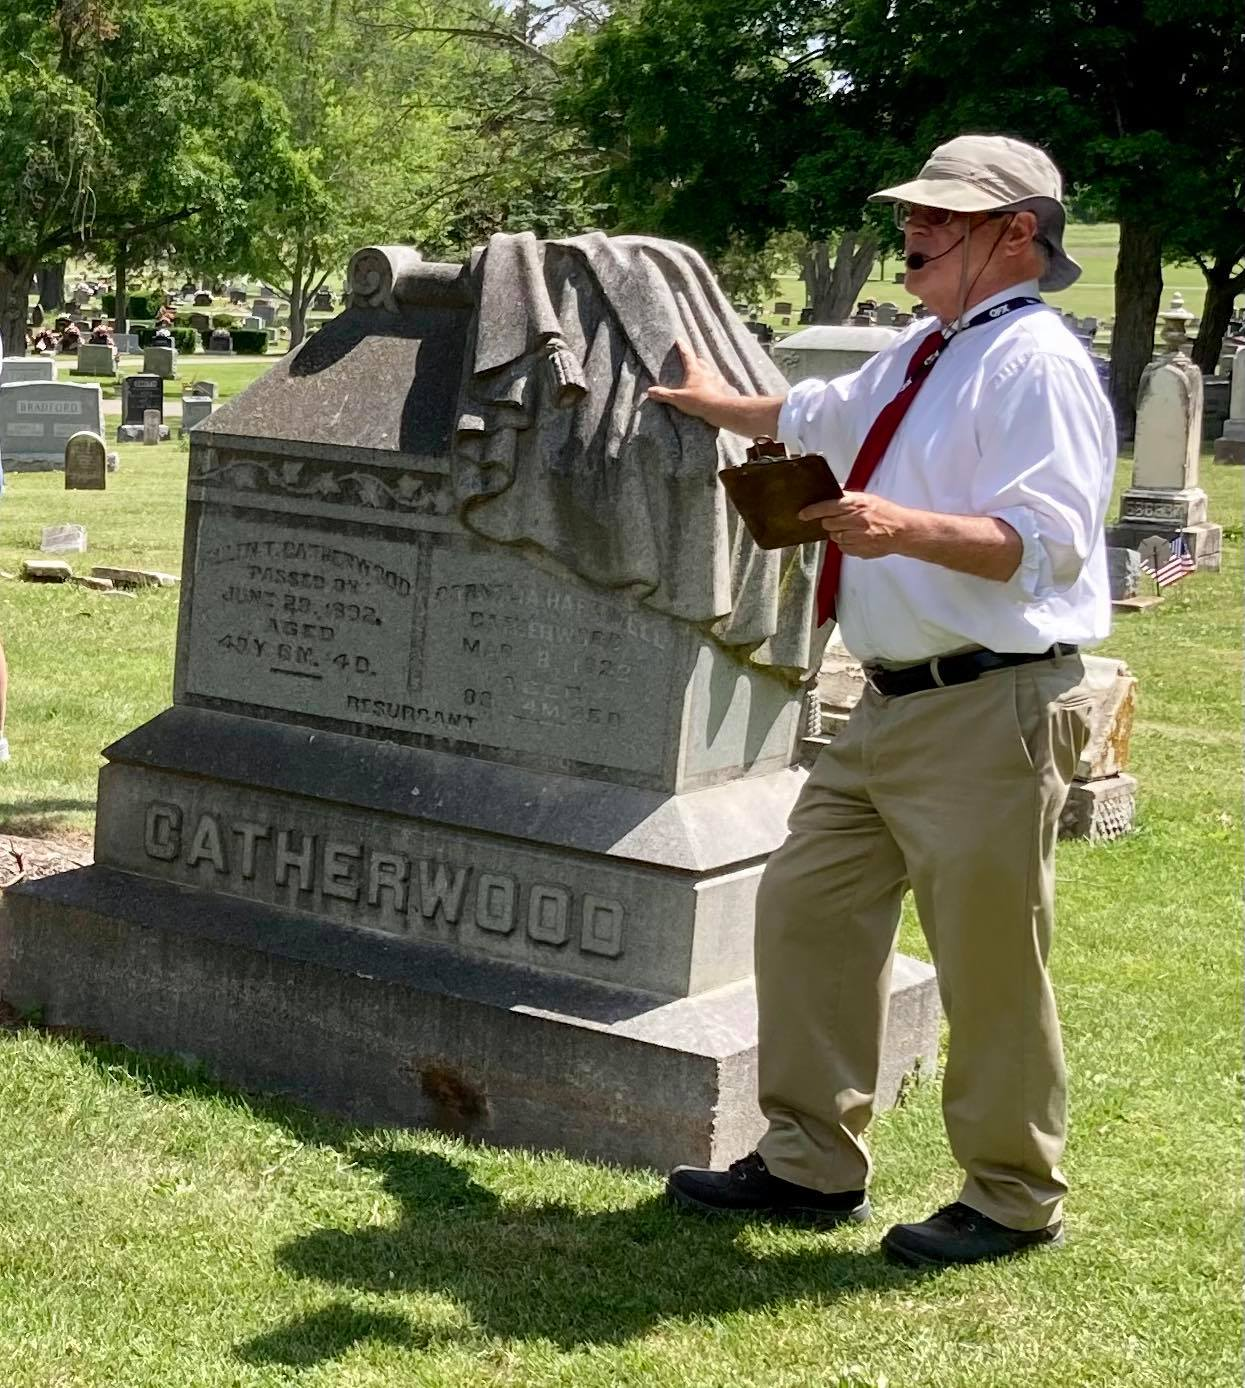 Tom Sweeney, co-host of the Floral Hill Cemetery Walk on June 5th. Tom is explaining the meaning of the cloak partial draped over a headstone.